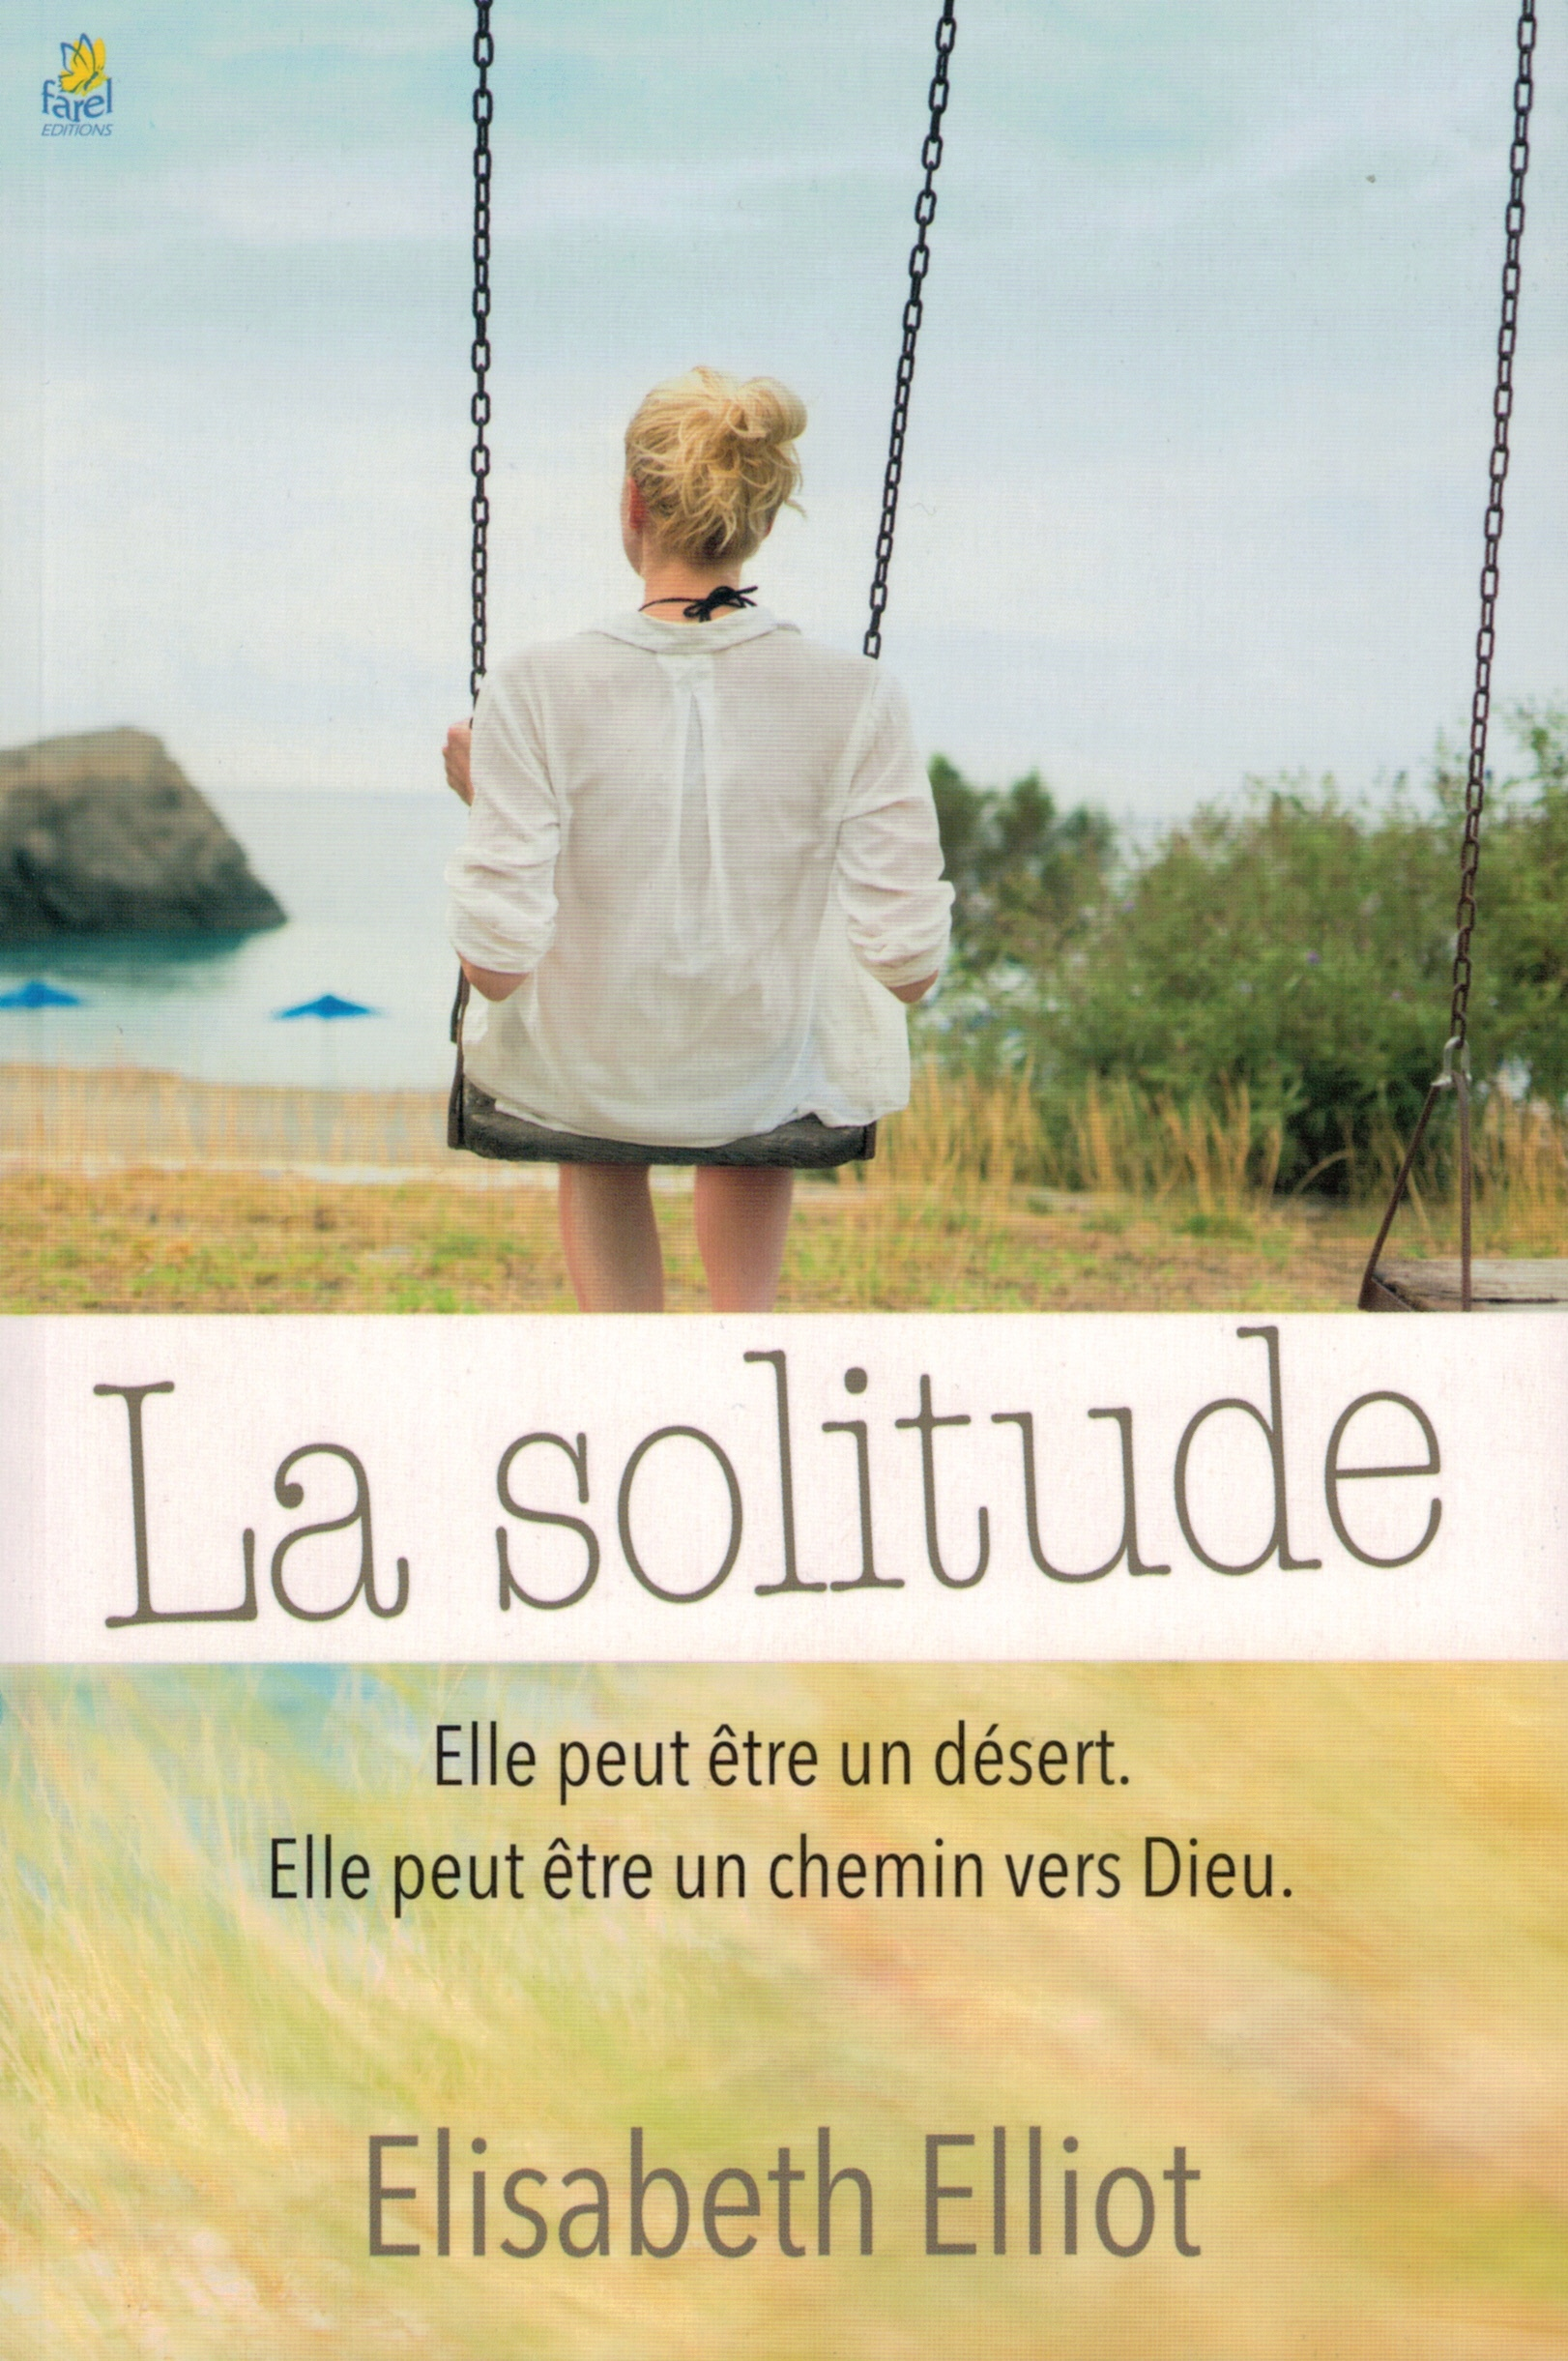 La solitude (Elliot)